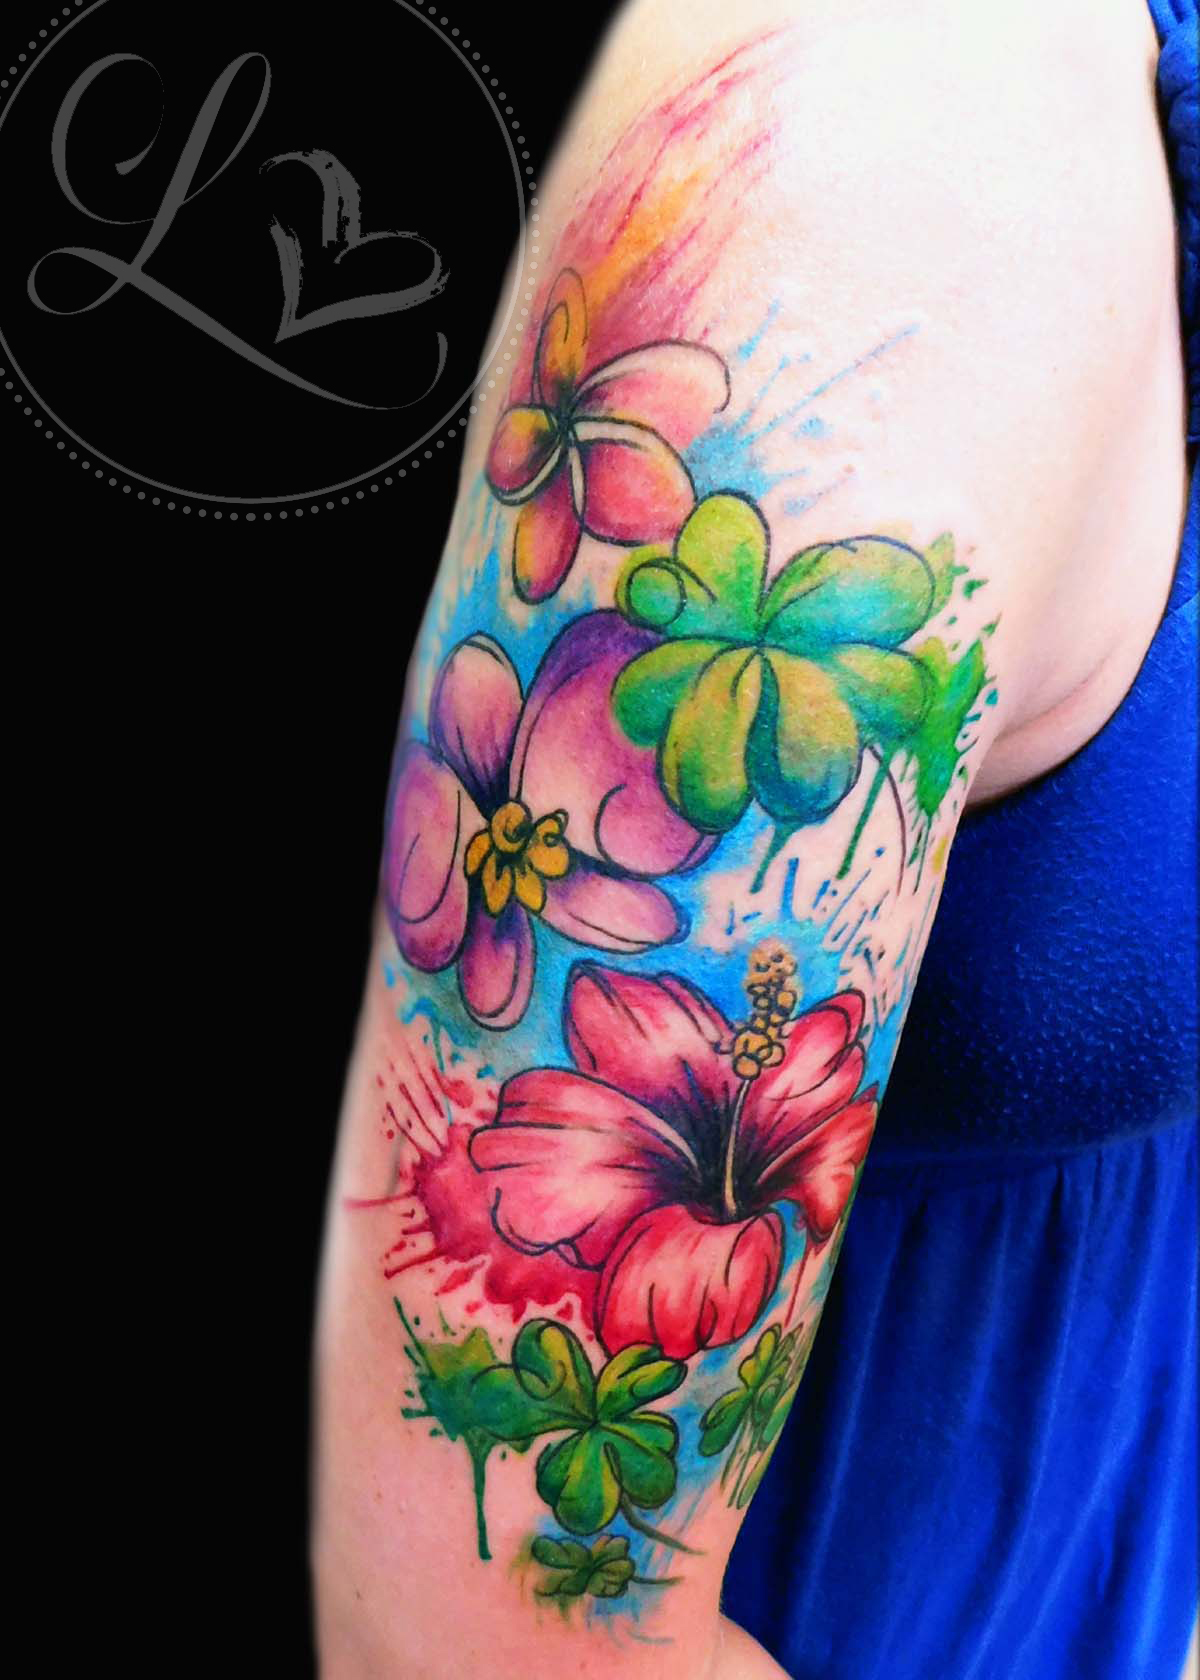 Watercolor floral half-sleeve tattoo composed of plumeria, hibiscus, orchid, and four-leaf clovers